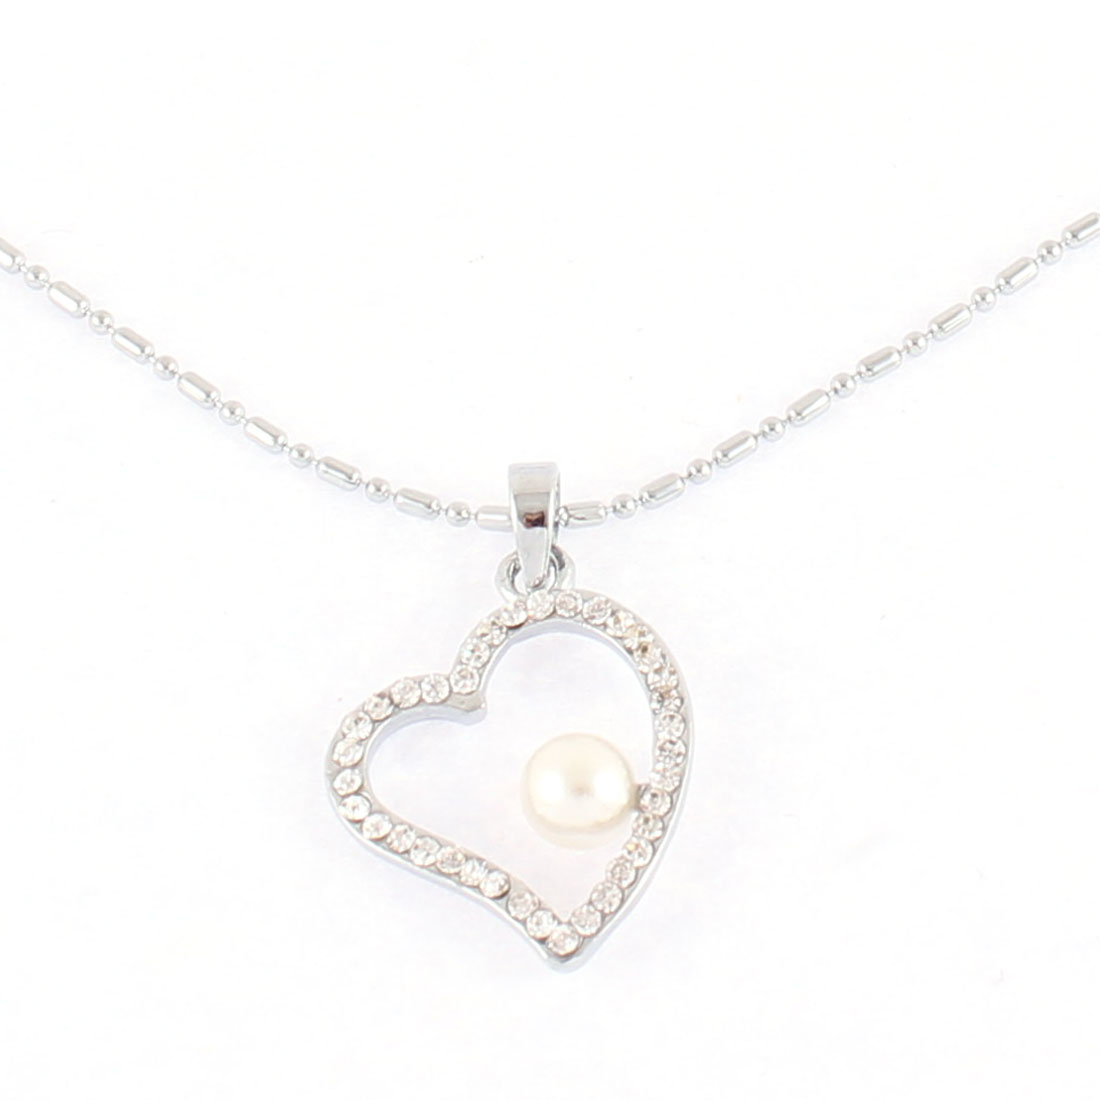 Lady Imitation Pearl Pendant Silver Tone Choker Chain Necklace Jewelry Gift